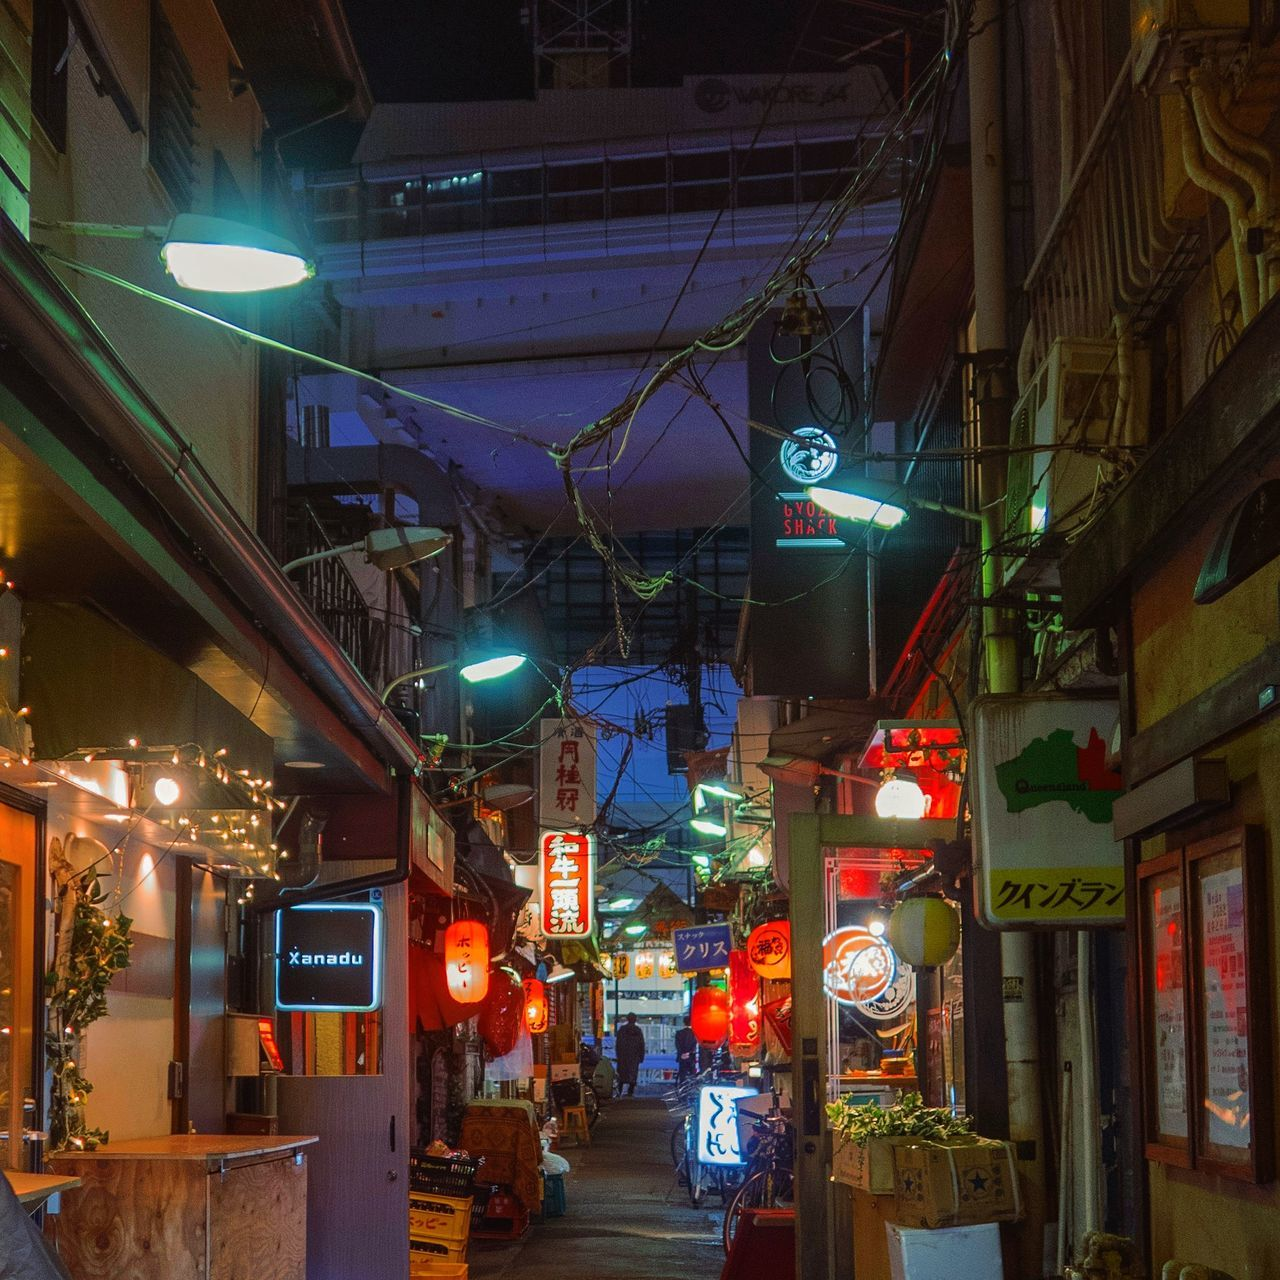 illuminated, night, lighting equipment, architecture, built structure, building exterior, city, street, glowing, store, hanging, no people, building, street light, communication, retail, electricity, decoration, light, ceiling